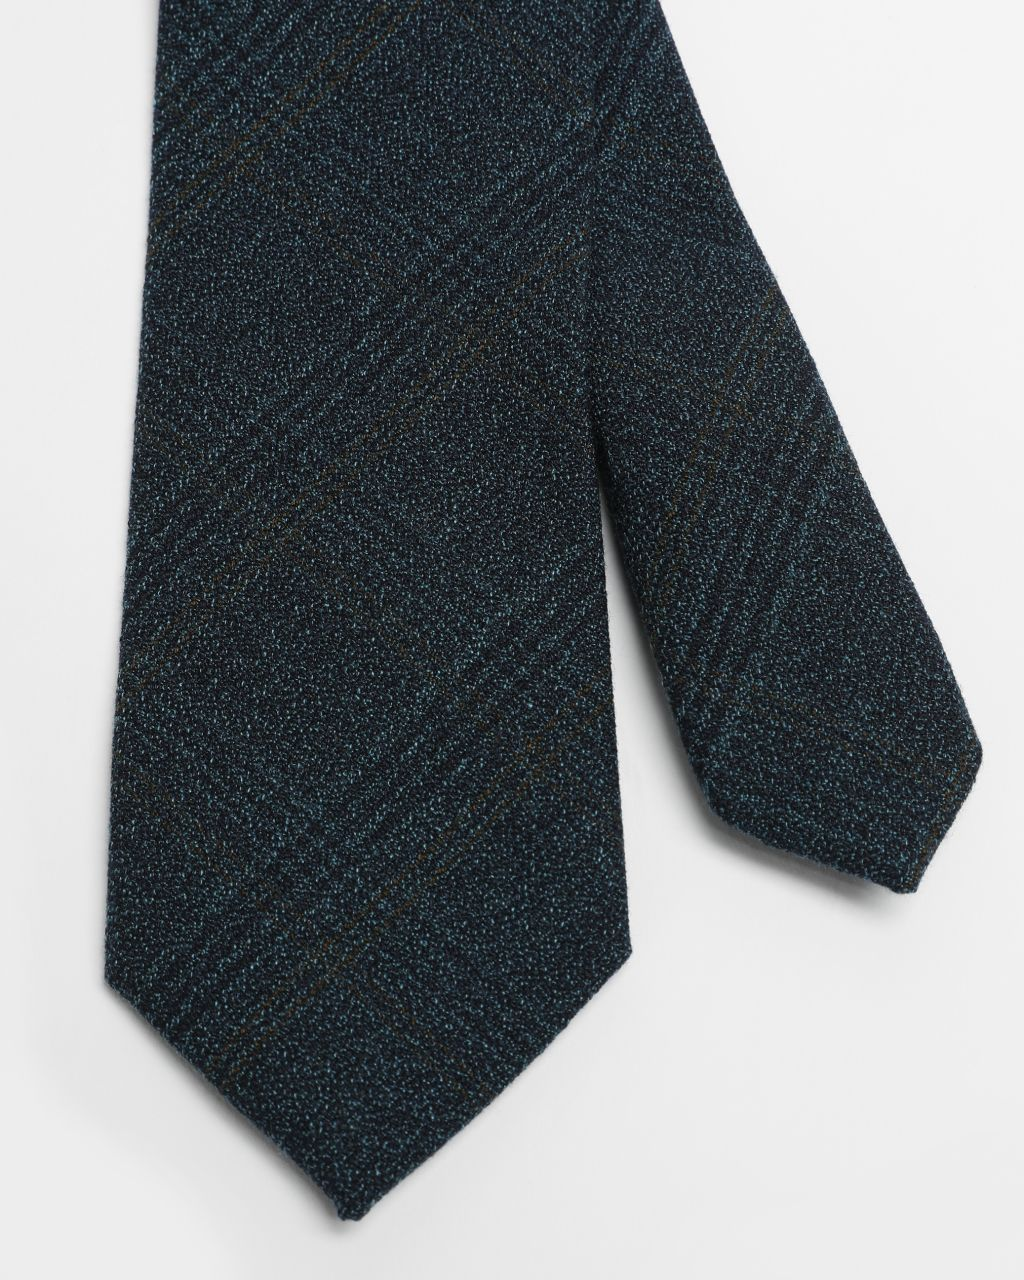 TED BAKER Fine Check Tie | TED BAKER SALE